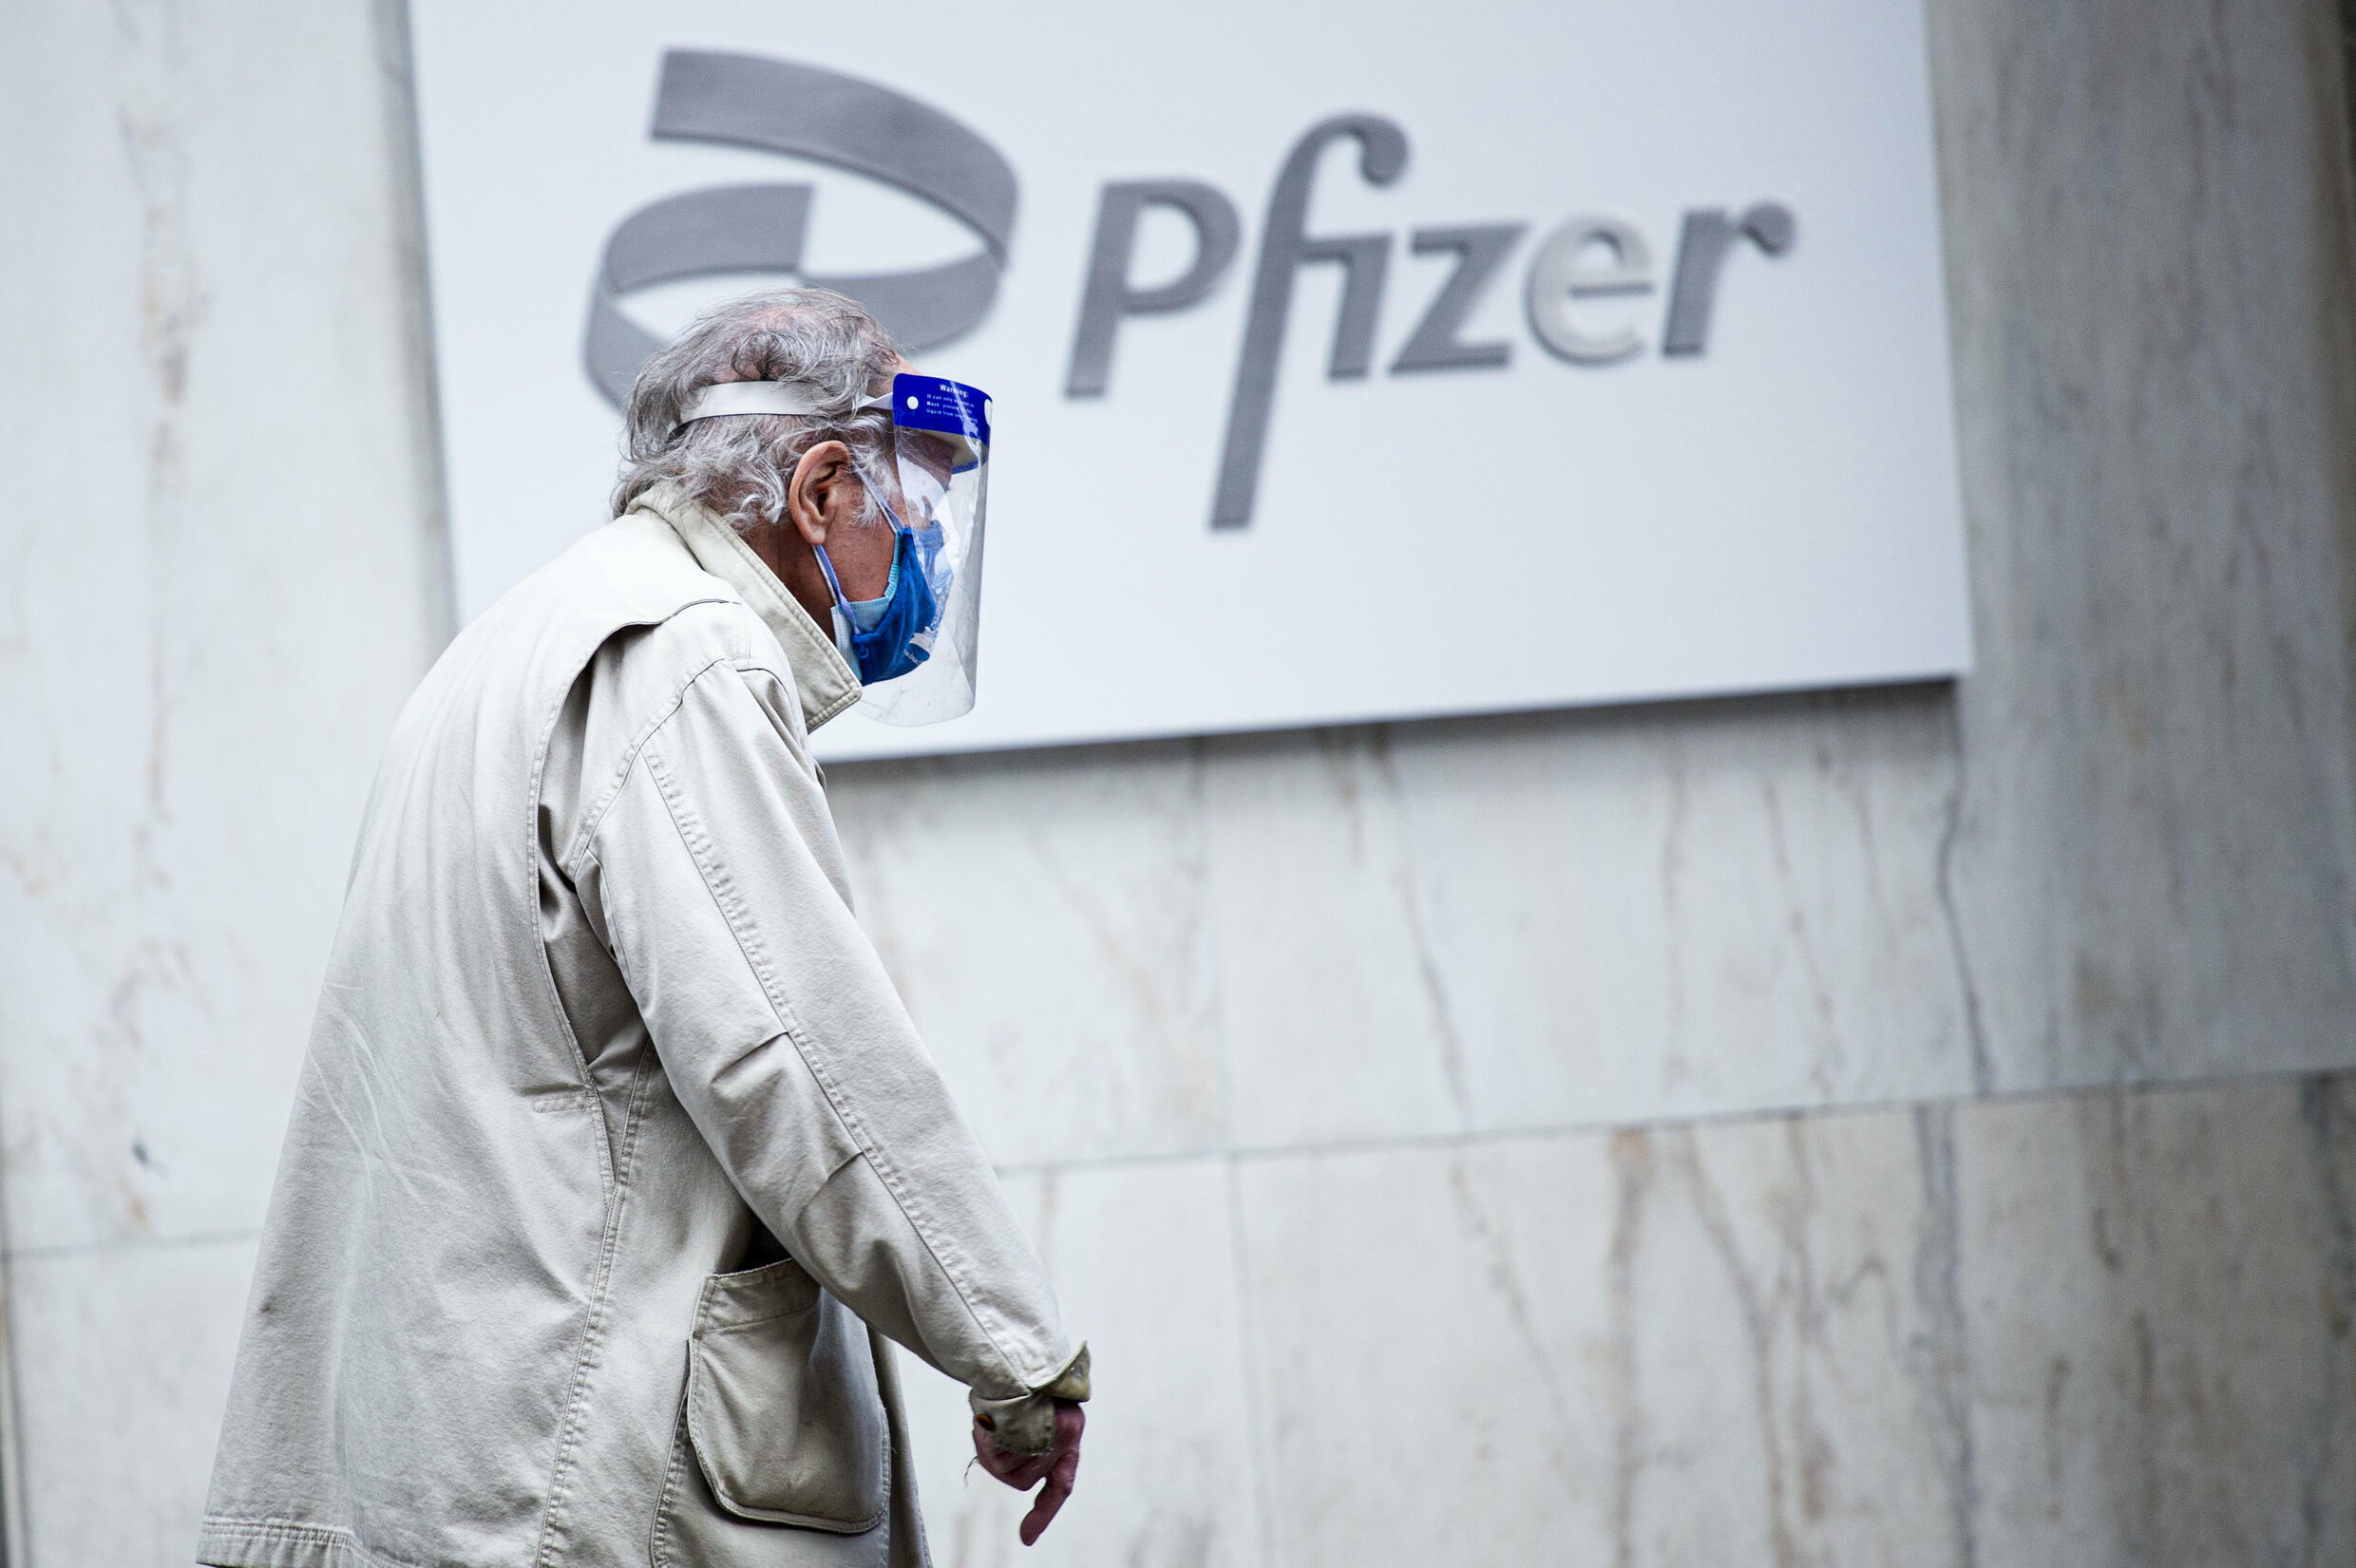 A man wearing facemask and shield walks past the Pfizer headquarters in New York